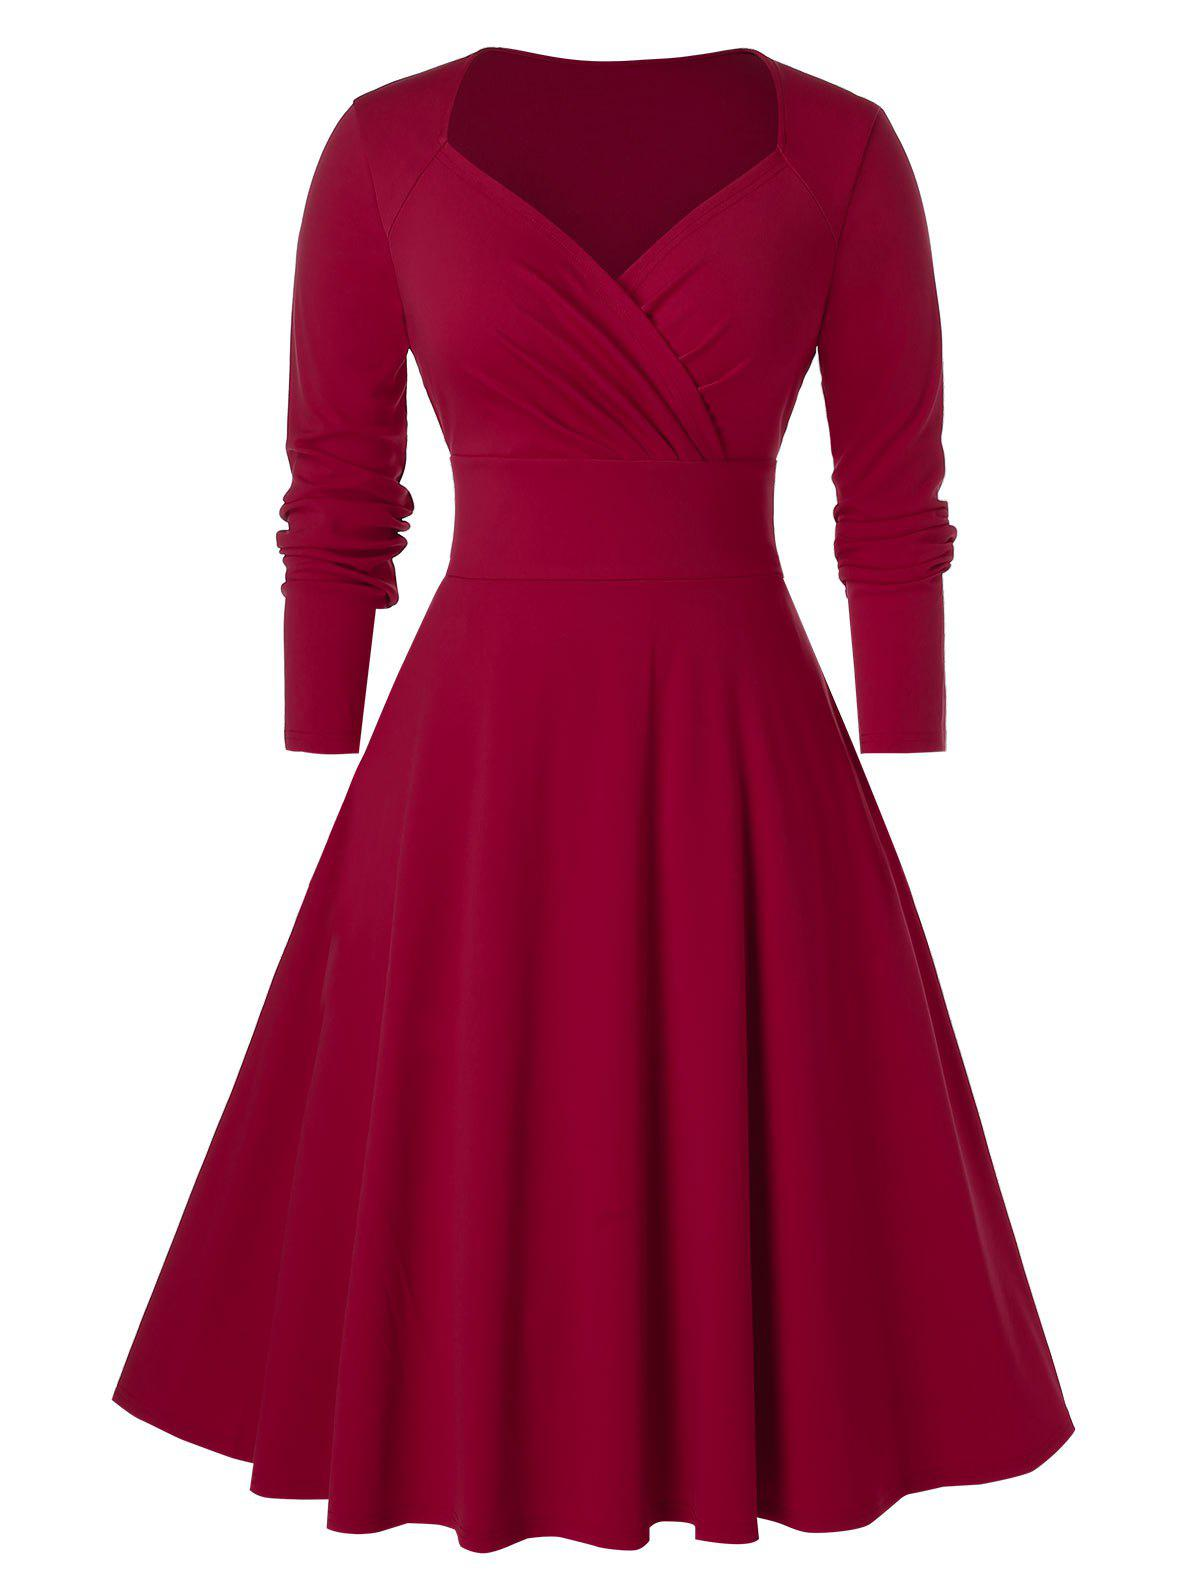 Plus Size Sweetheart Neck Midi Surplice Dress - RED WINE 4X